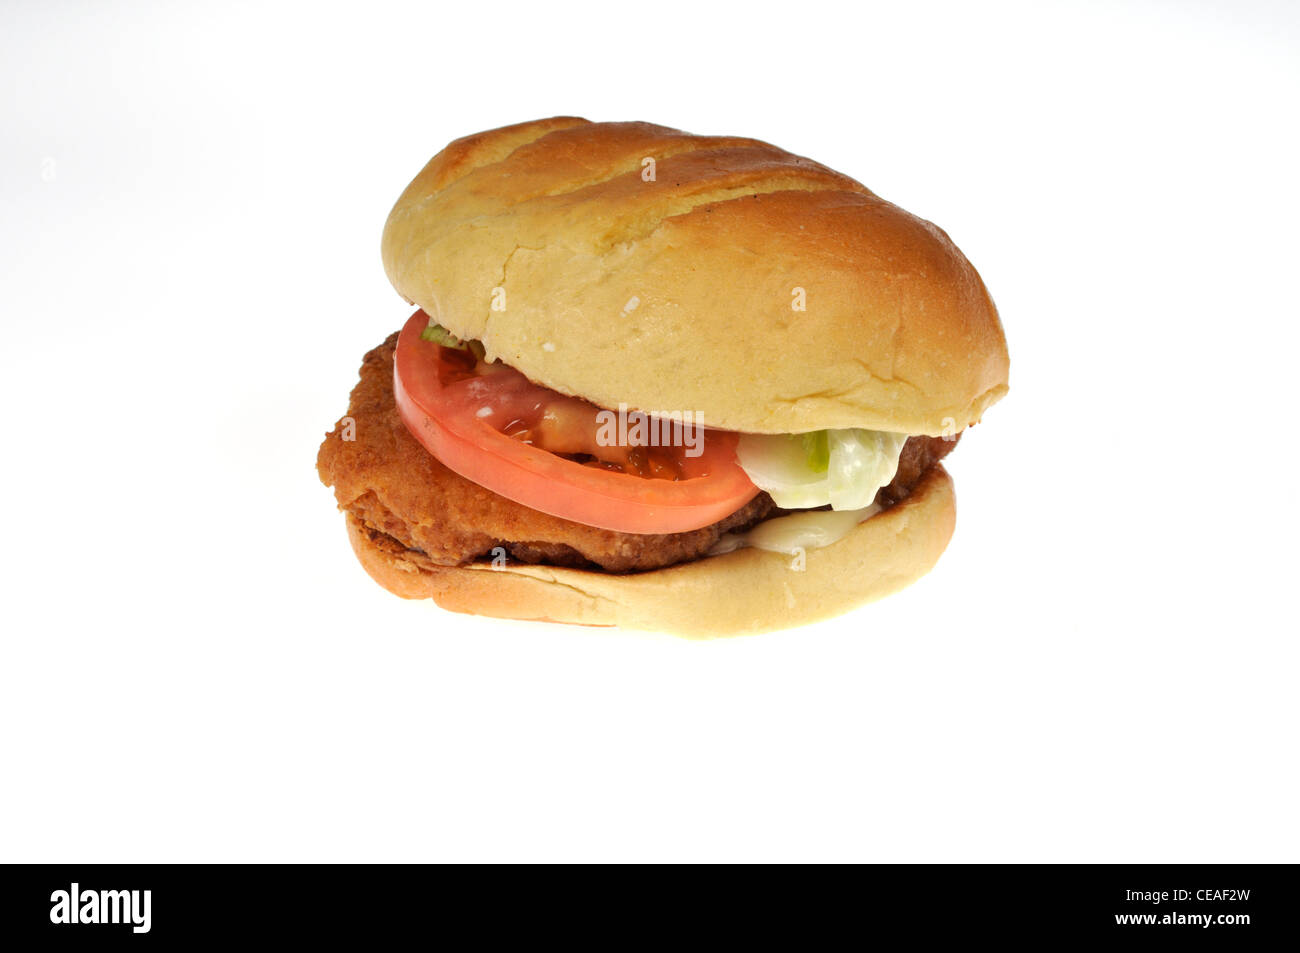 Burger King tendercrisp chicken sandwich with lettuce and tomato on artisan roll on white background cutout USA. - Stock Image